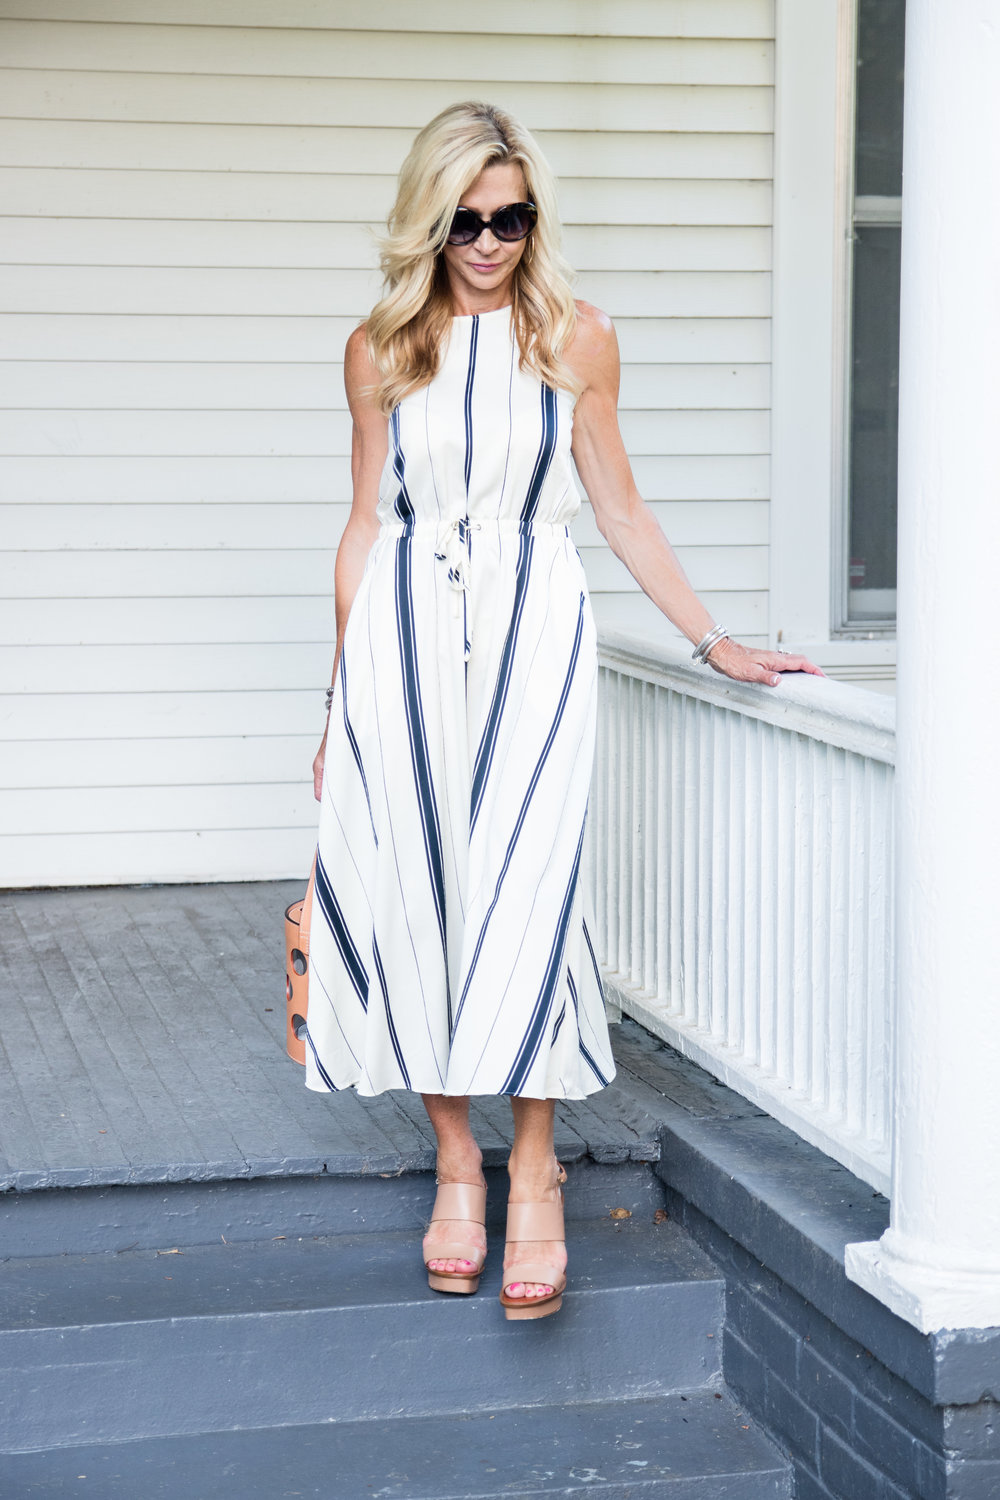 Loft dress with Tory Burch bag and shoes for July 4th